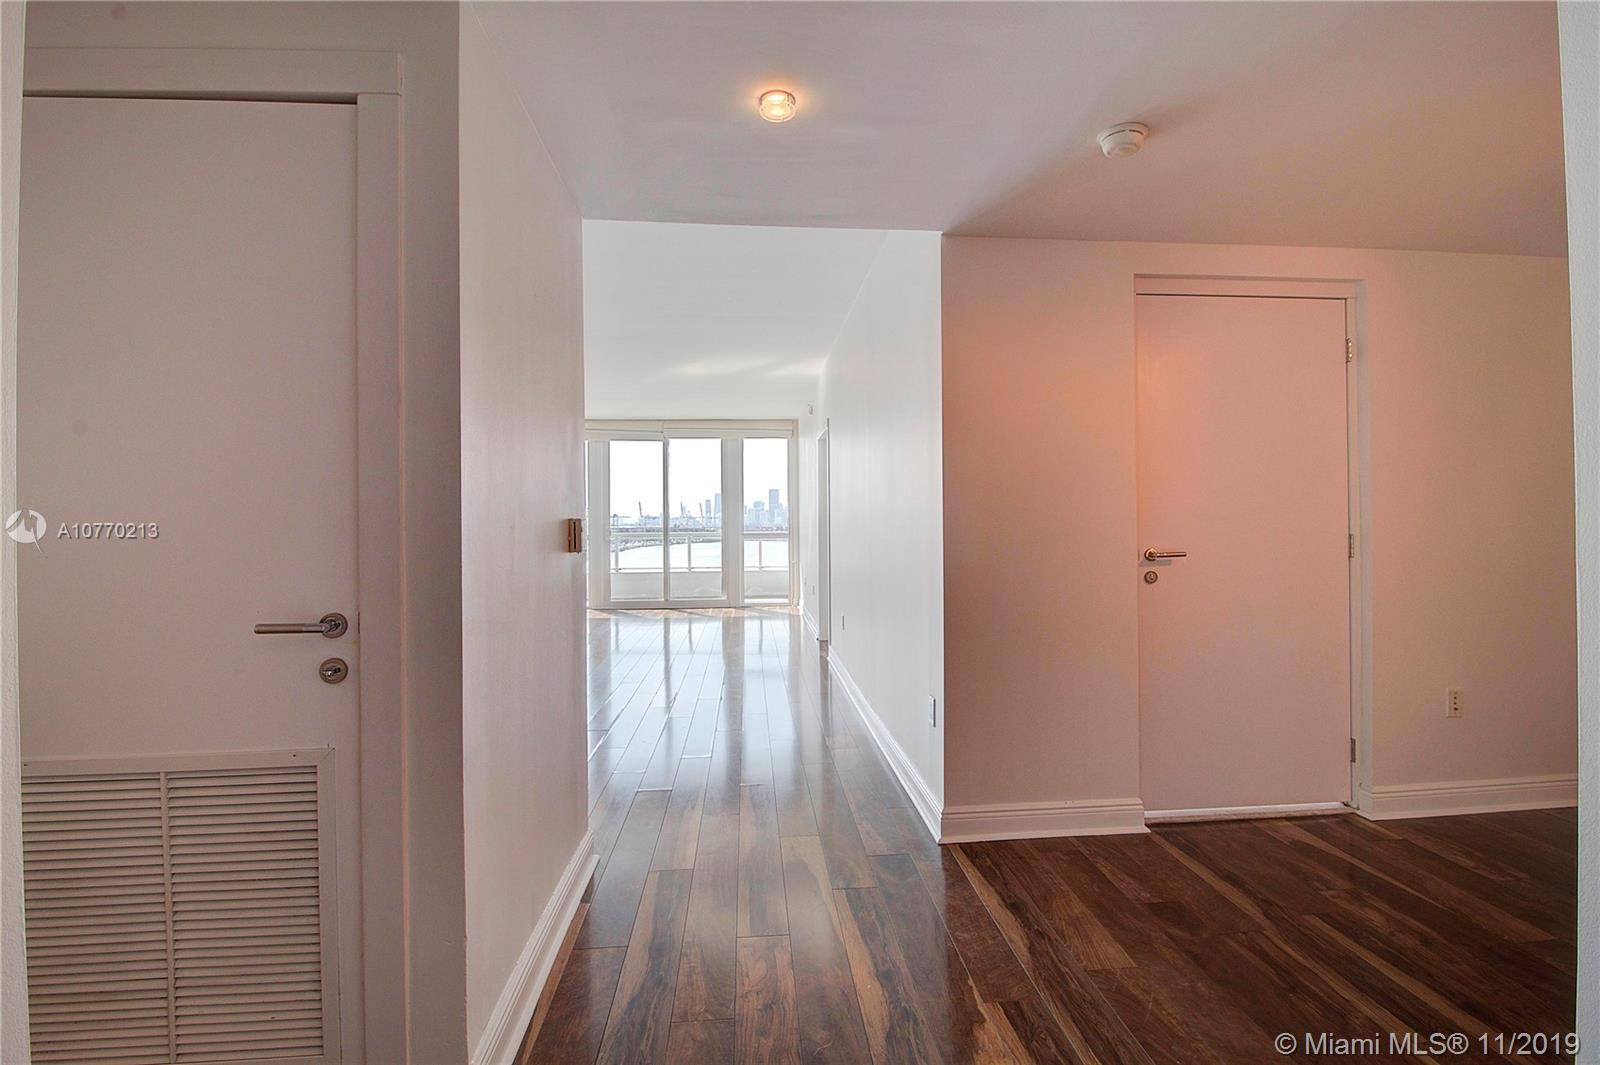 Photo of Bentley Bay South Apt 802